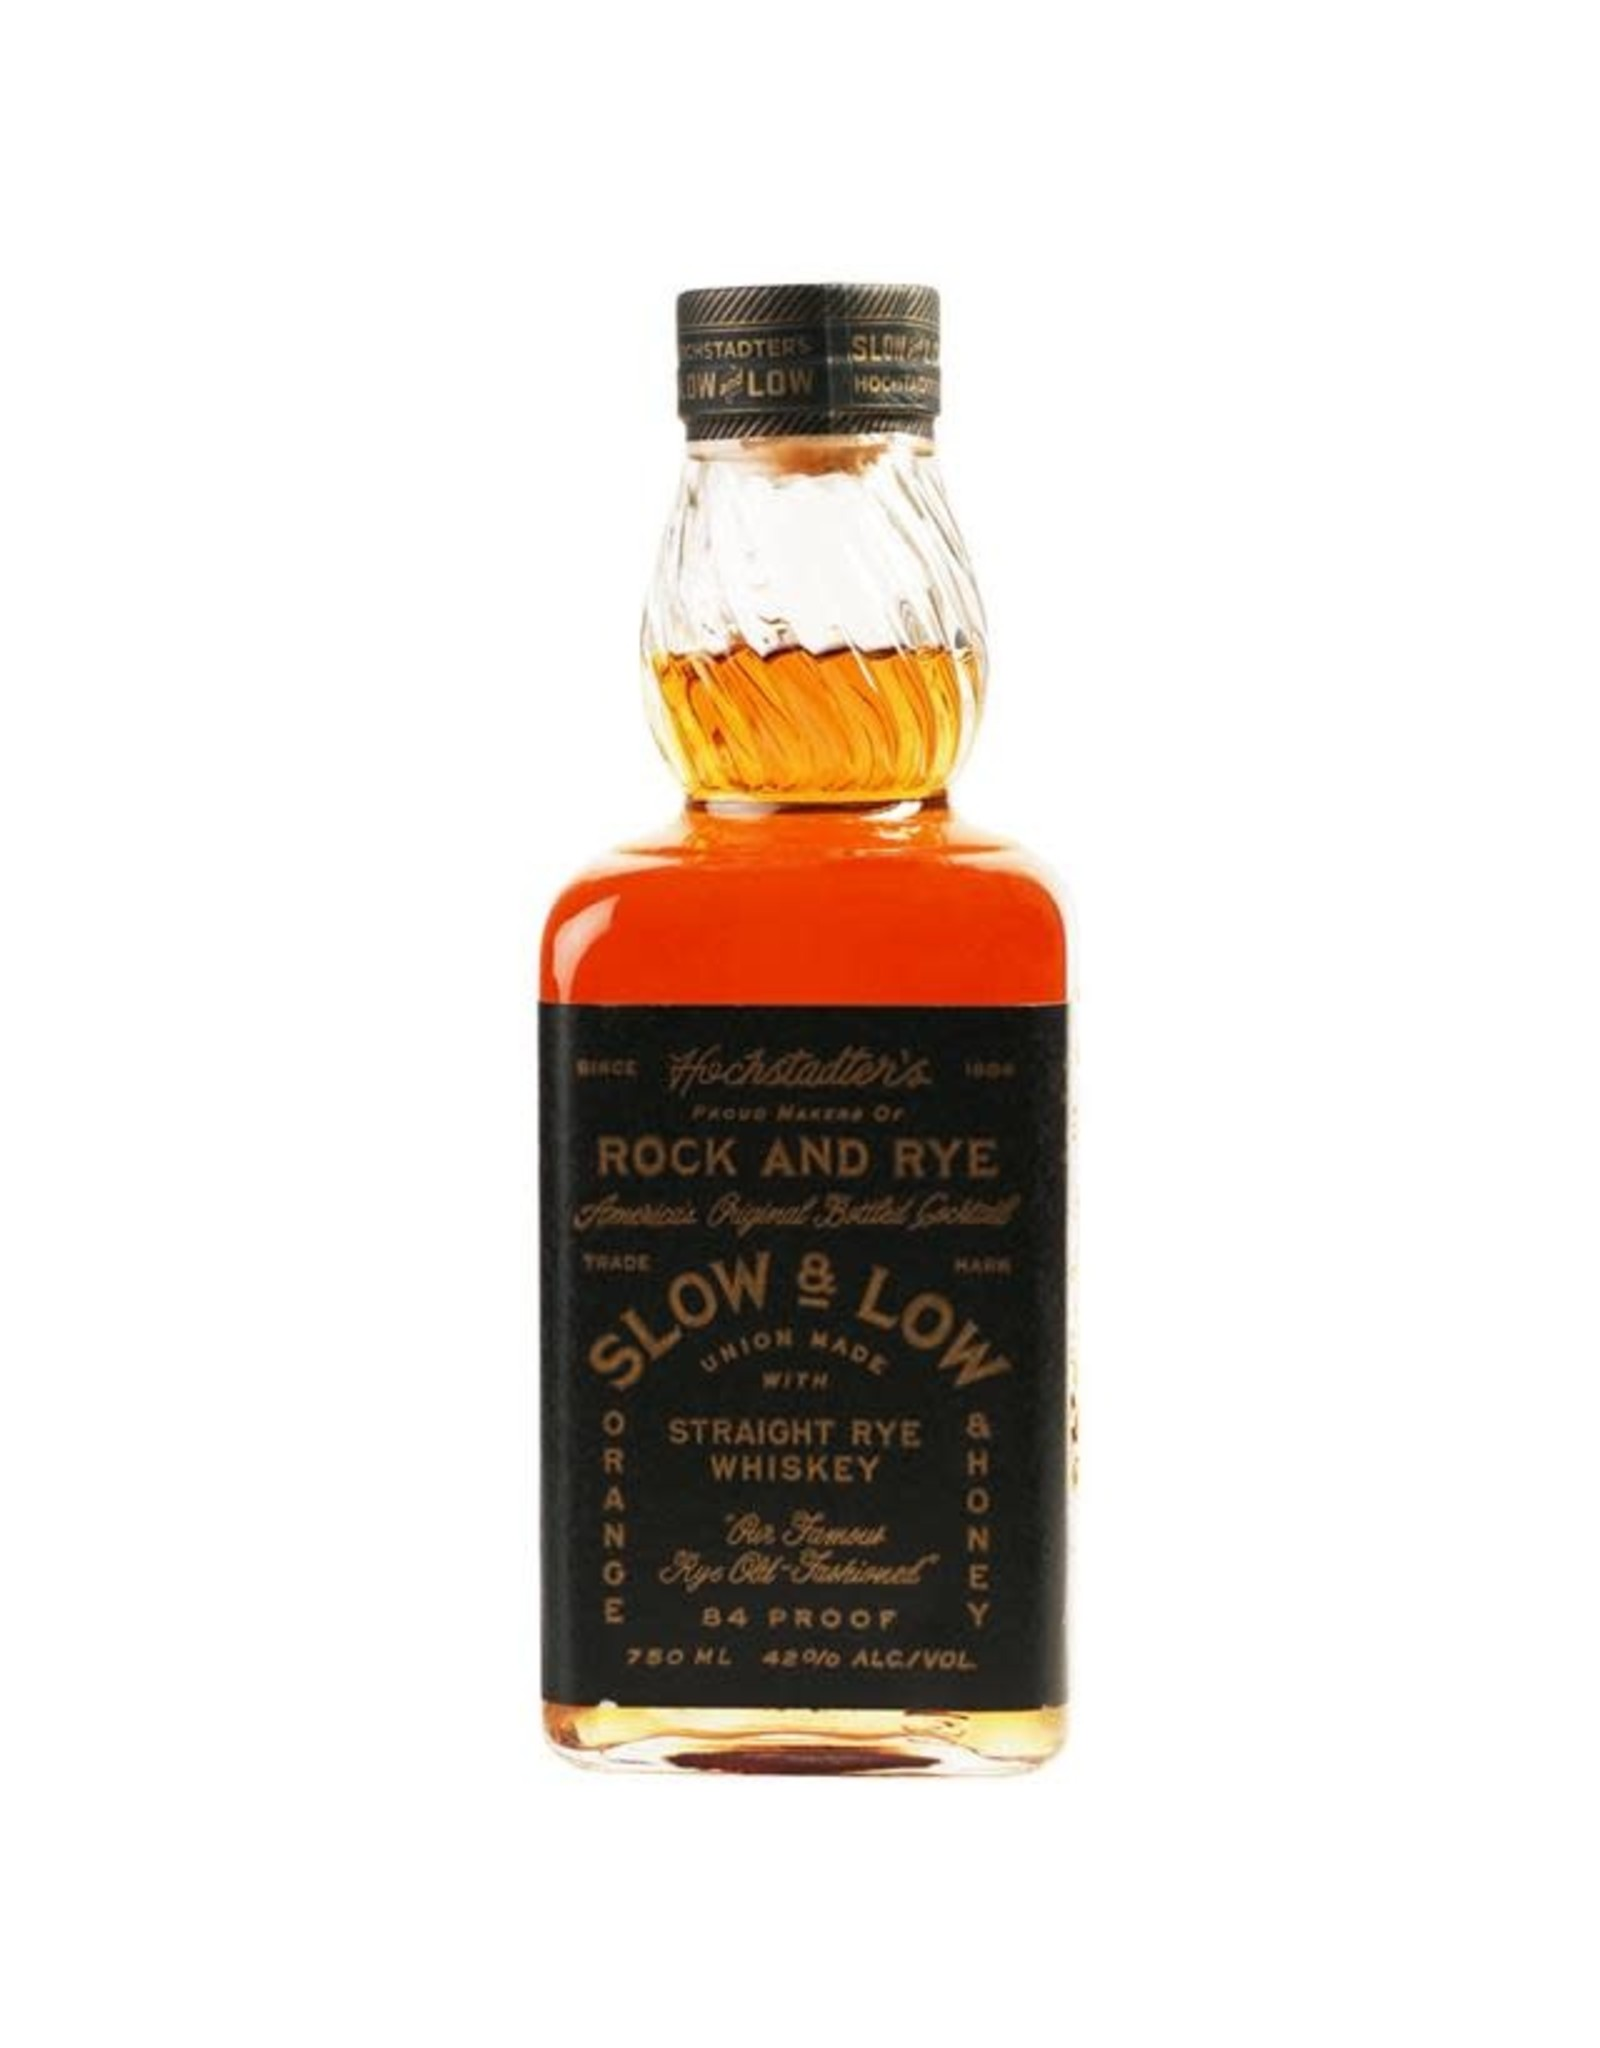 HOCHSTADTERS SLOW AND LOW RYE WHISKEY 750ML